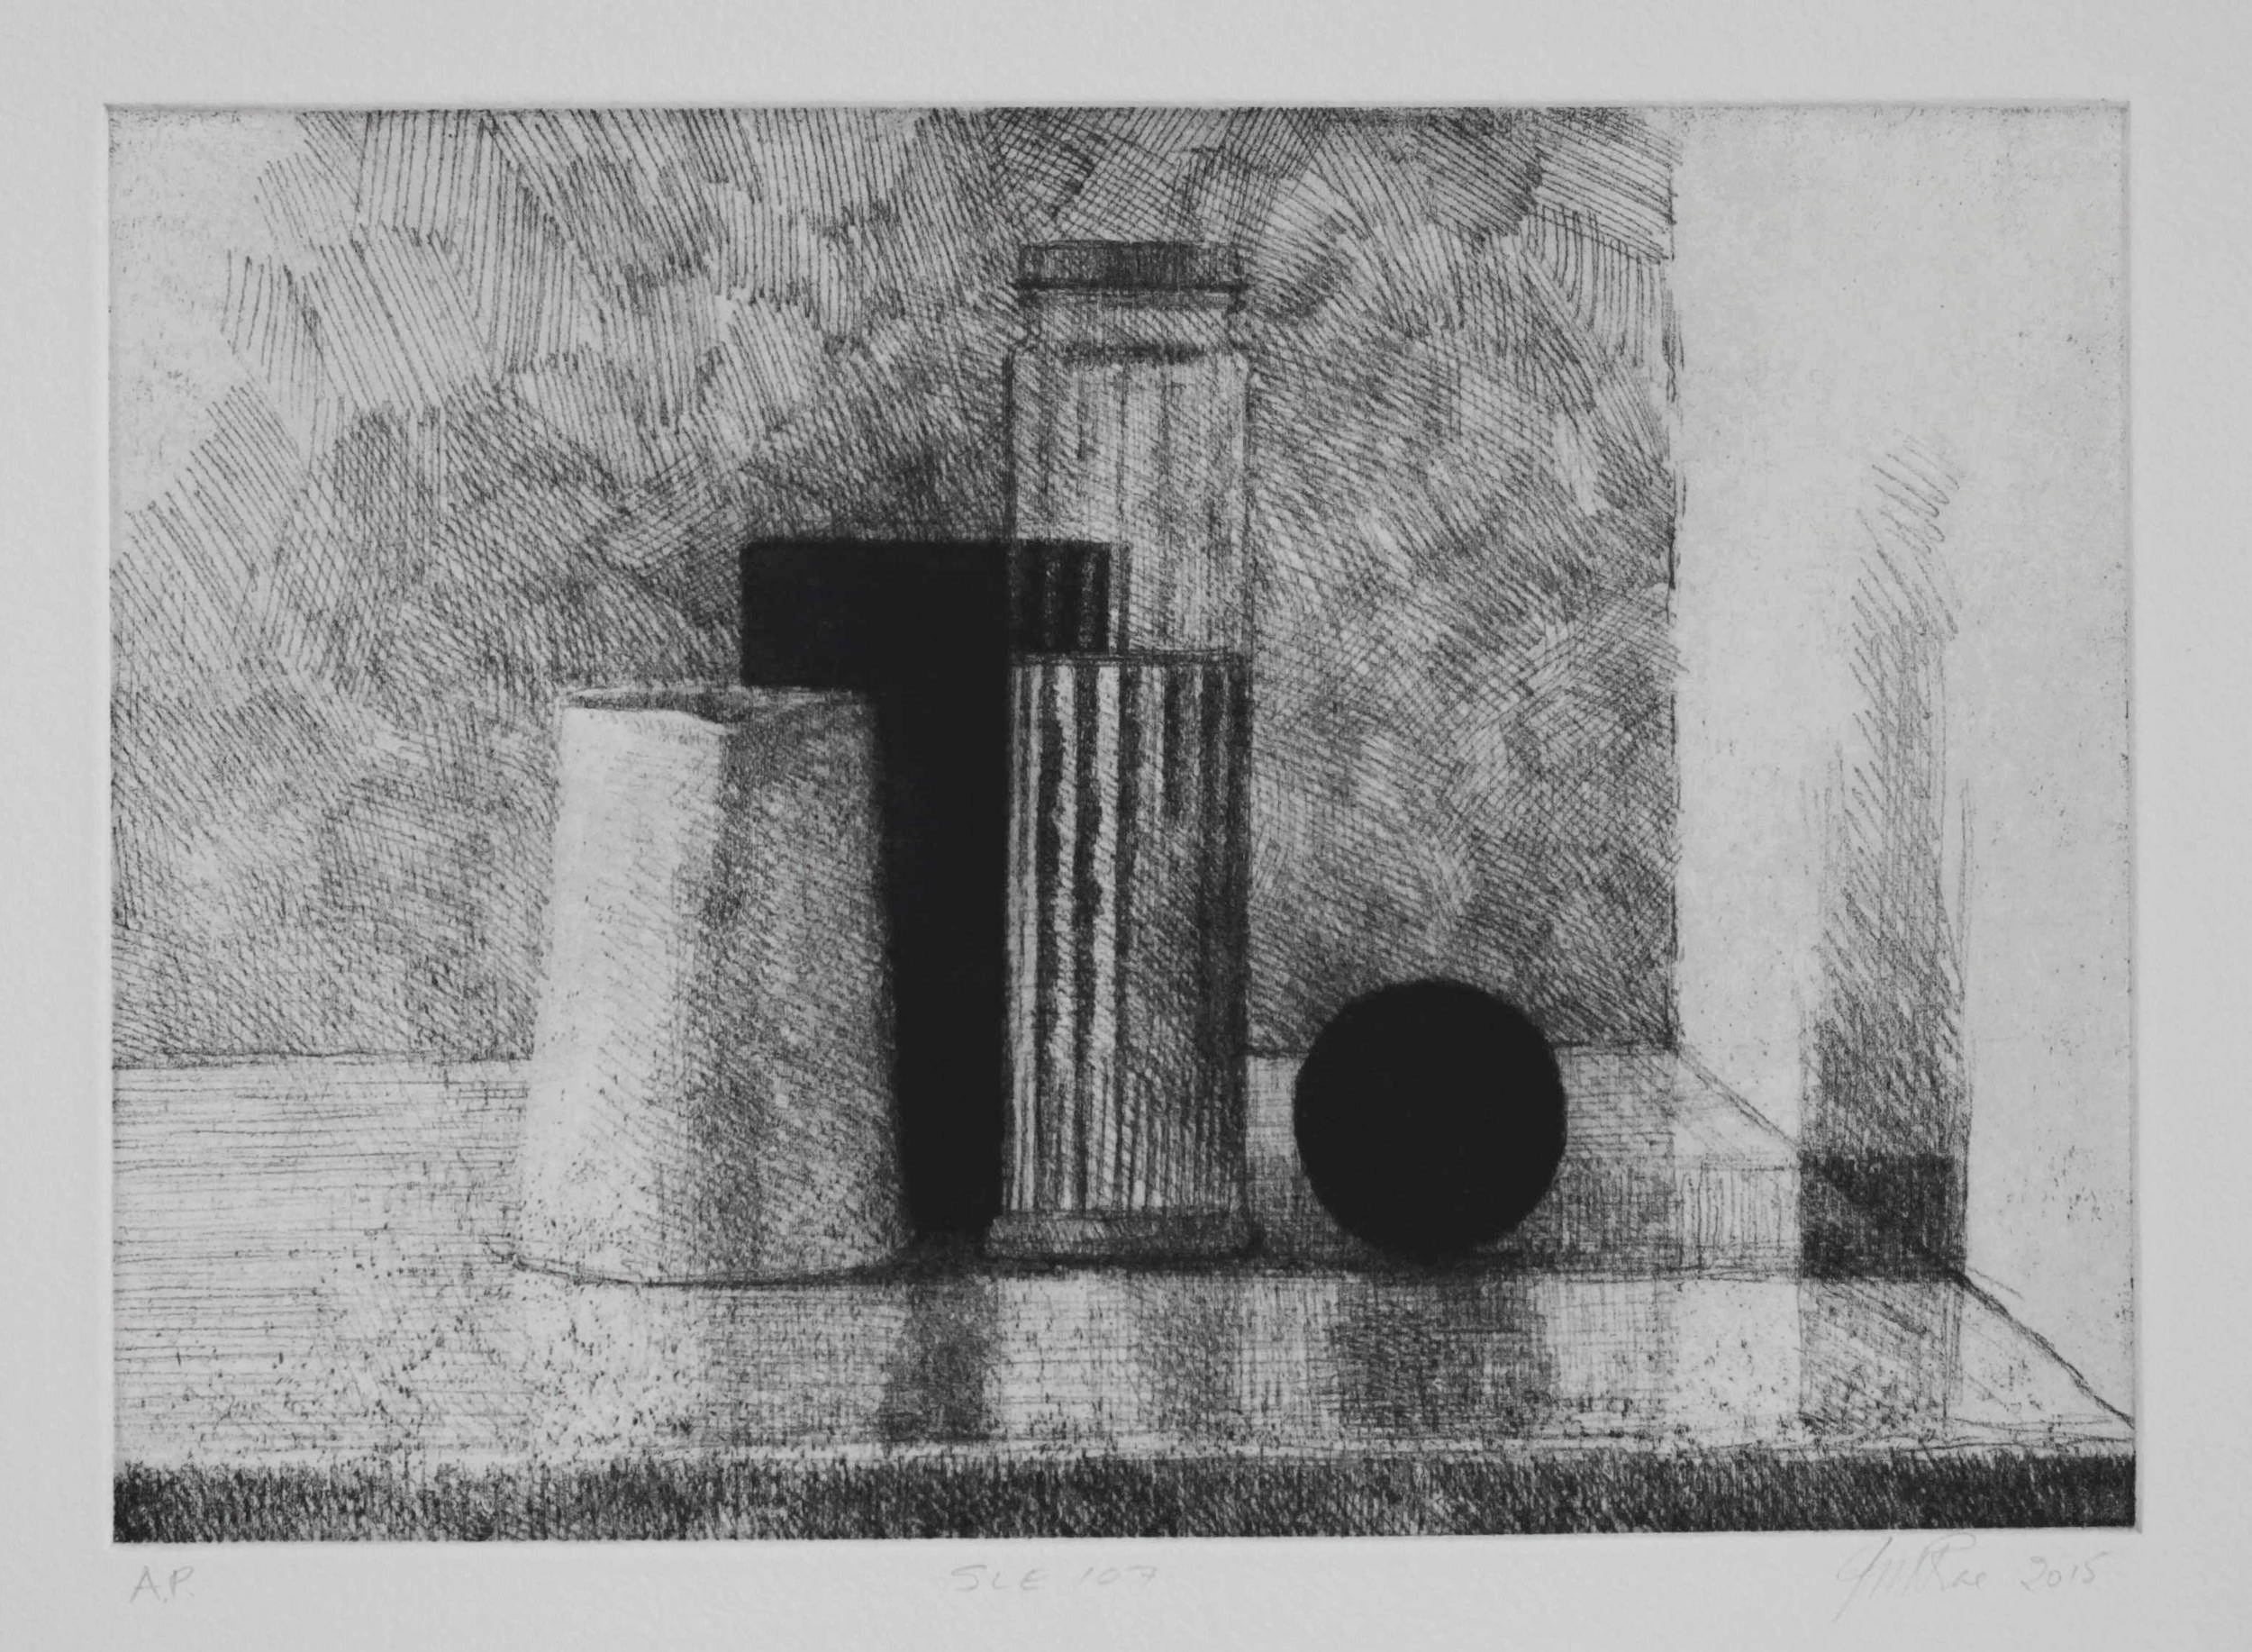 SLE107, 2015, soft ground etching with foul bite on Hahnemühle paper 615mmx 530 (plate 292mm x 208mm).